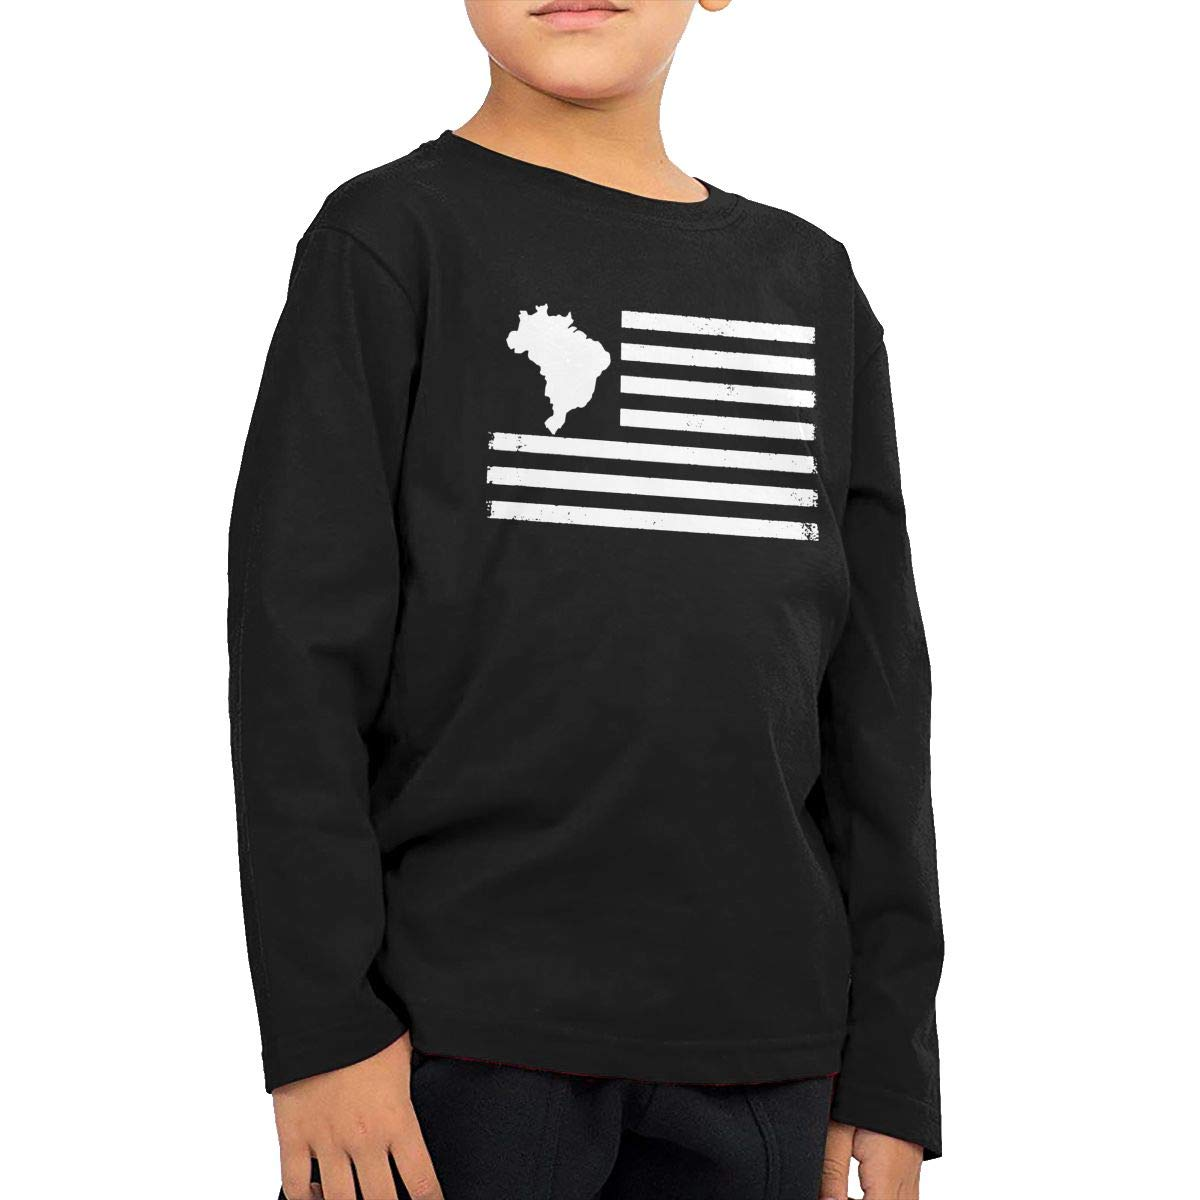 Brazil Map Flag Vintage USA Fashion Toddler Kid Baby Boys Girls Long Sleeve Shirt Clothing